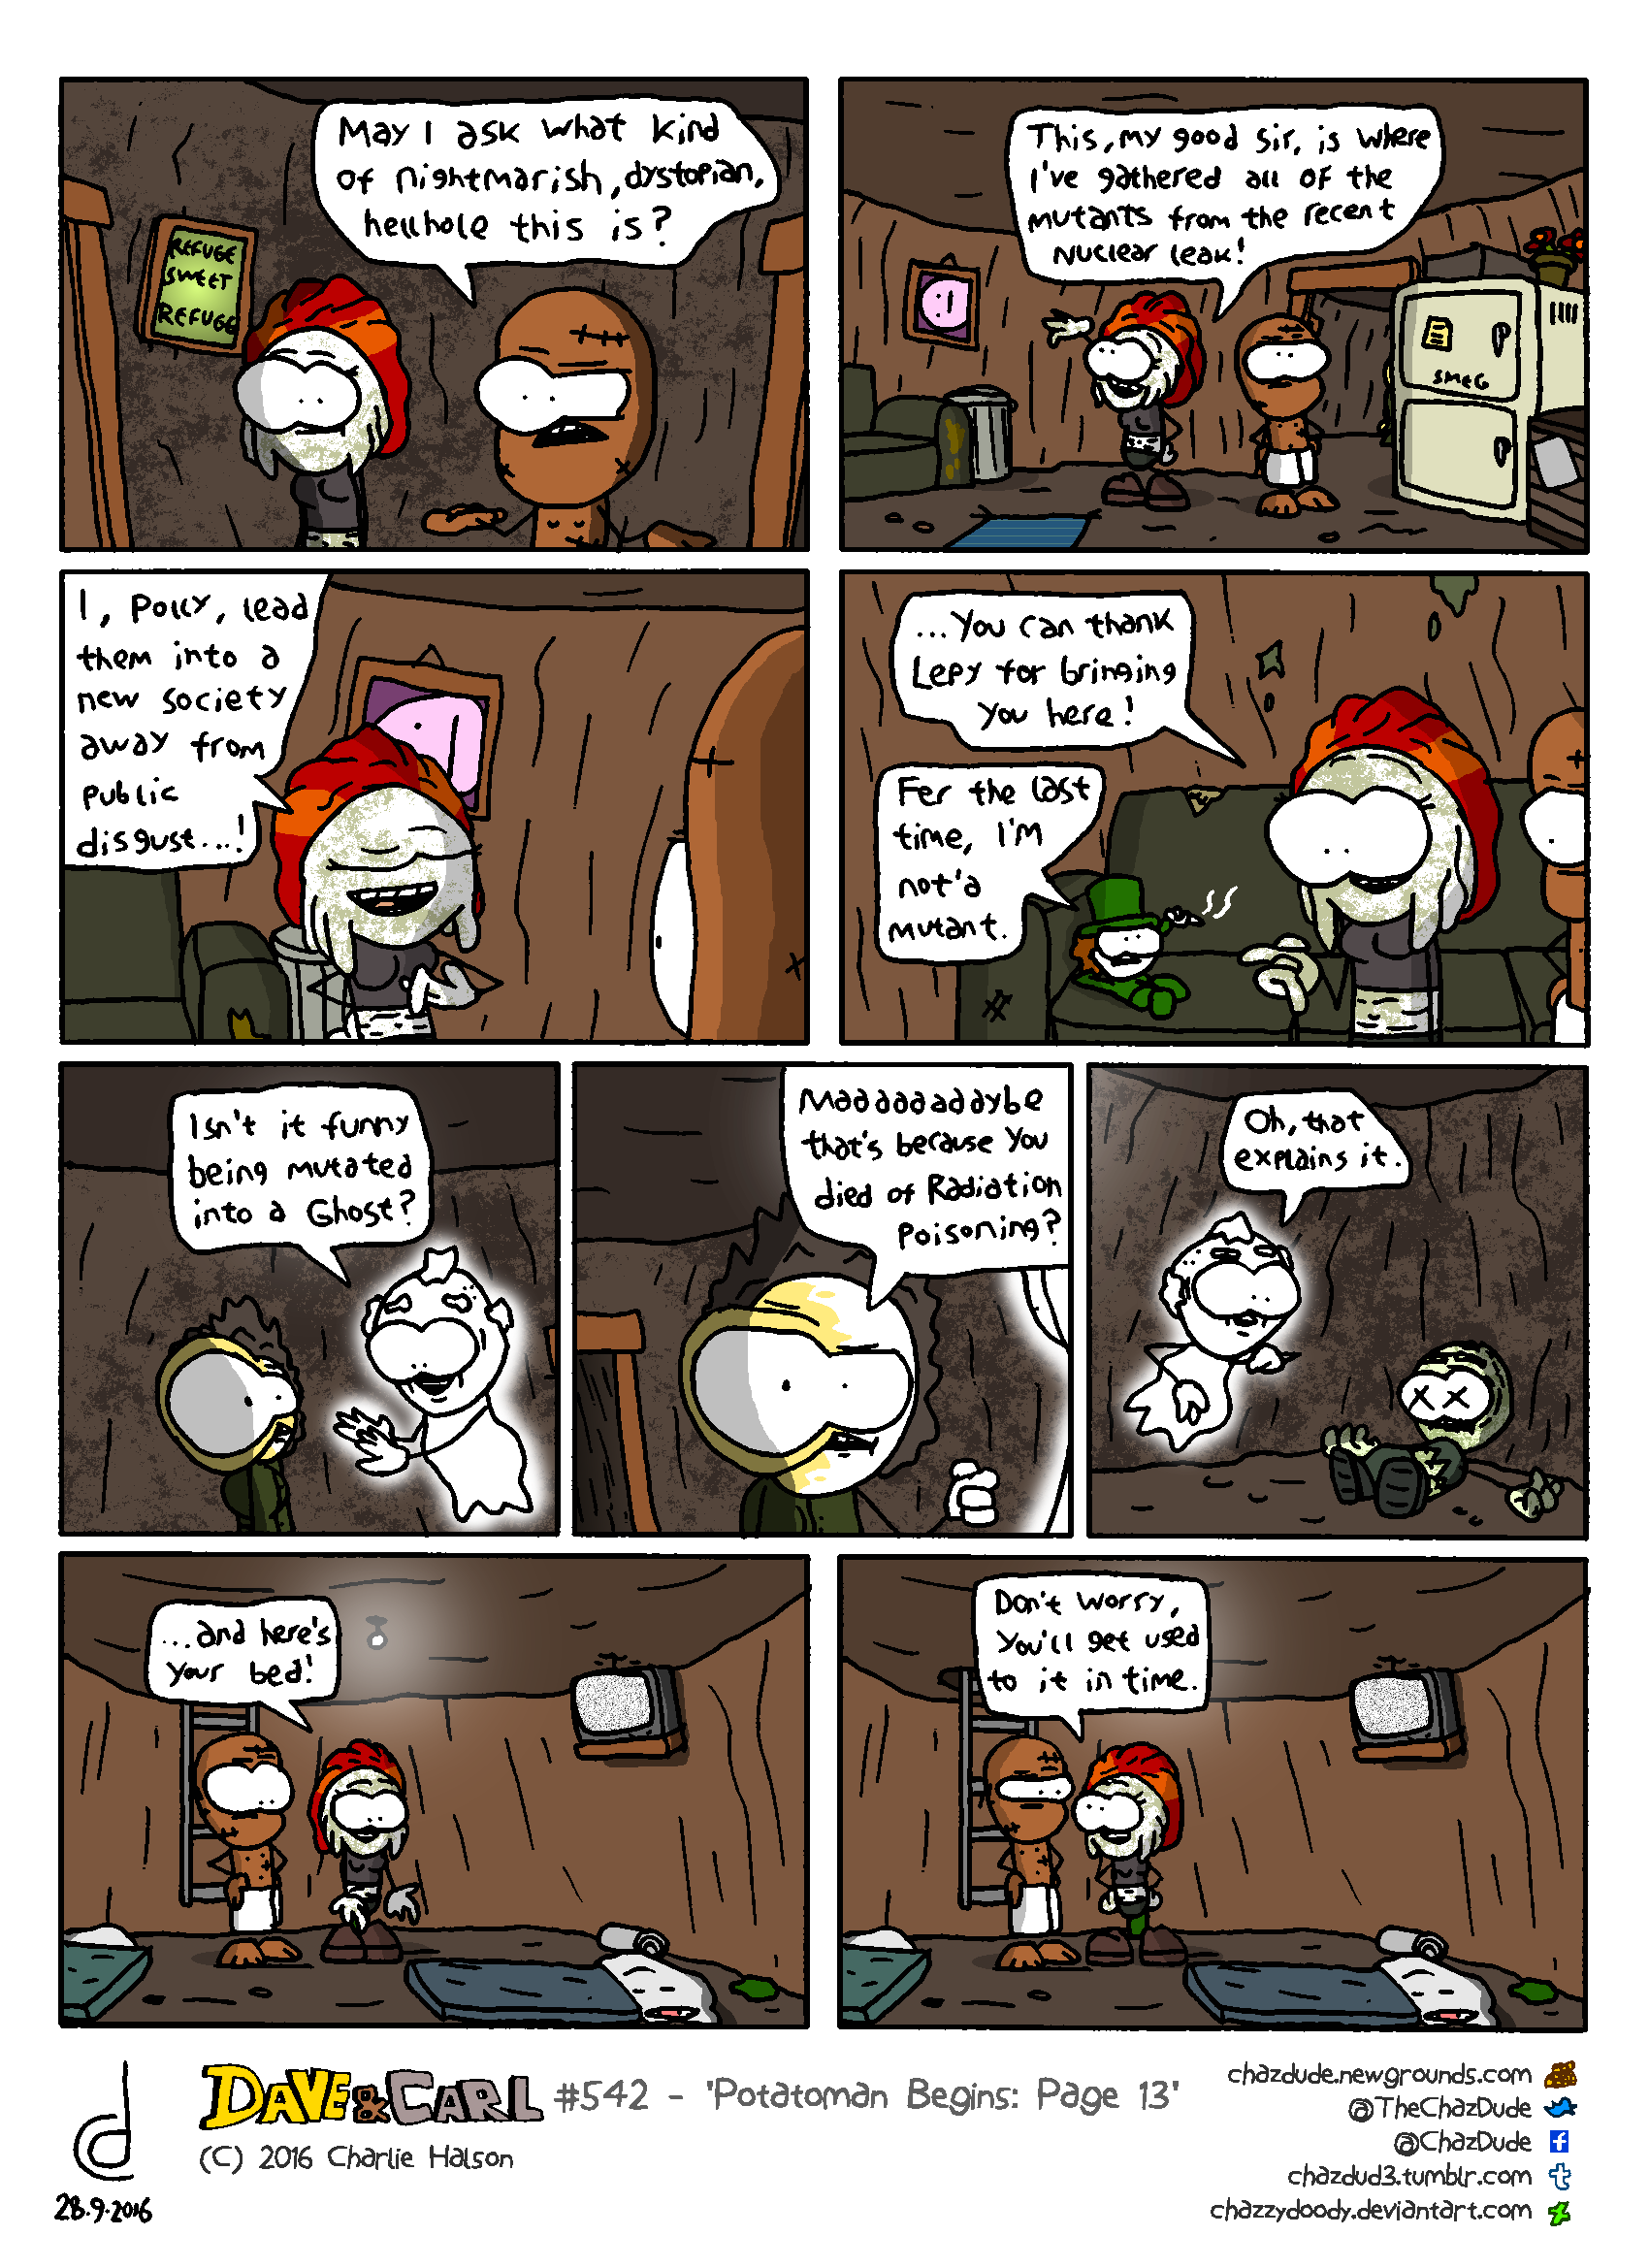 Potatoman Begins: Page 13